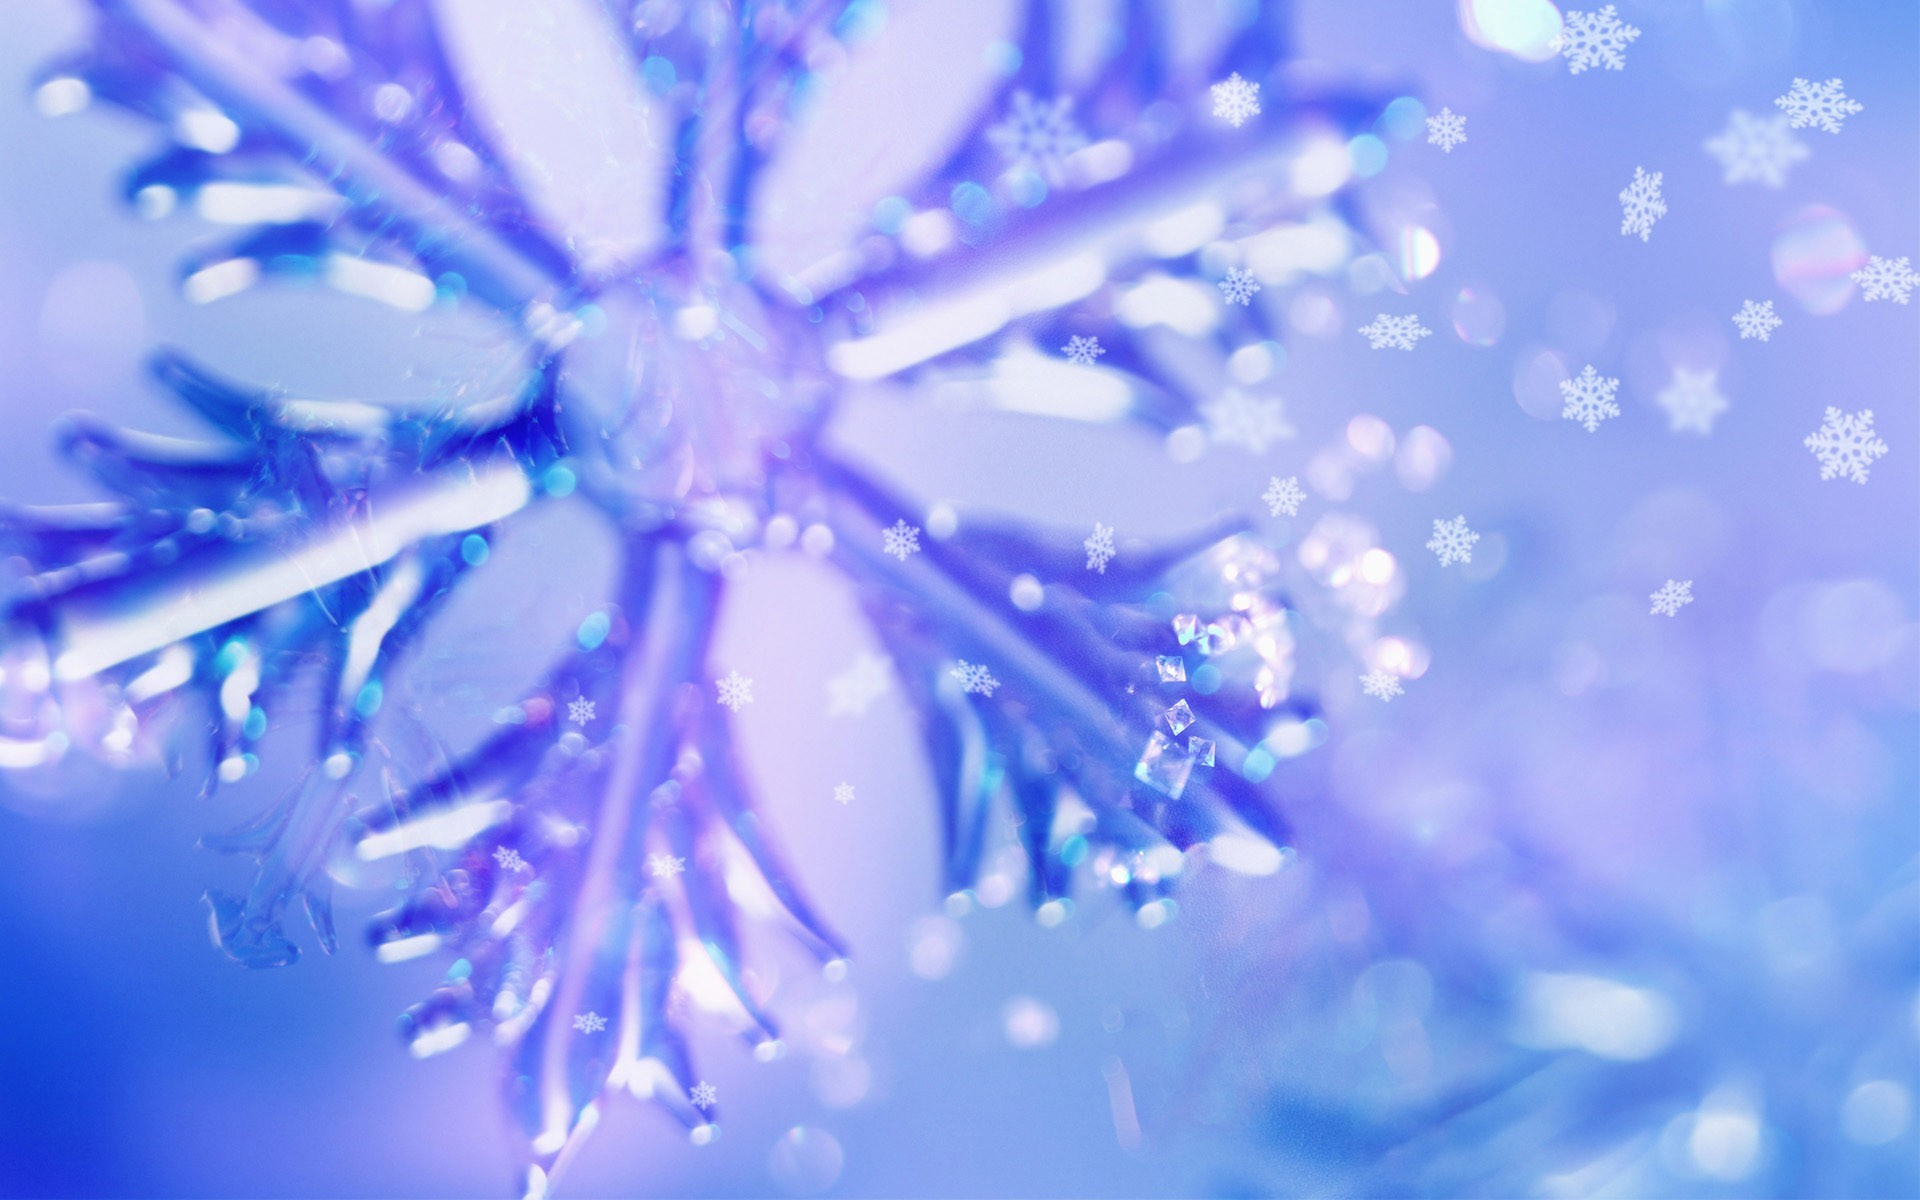 916570 popular winter christmas background 1920x1200 for windows 10